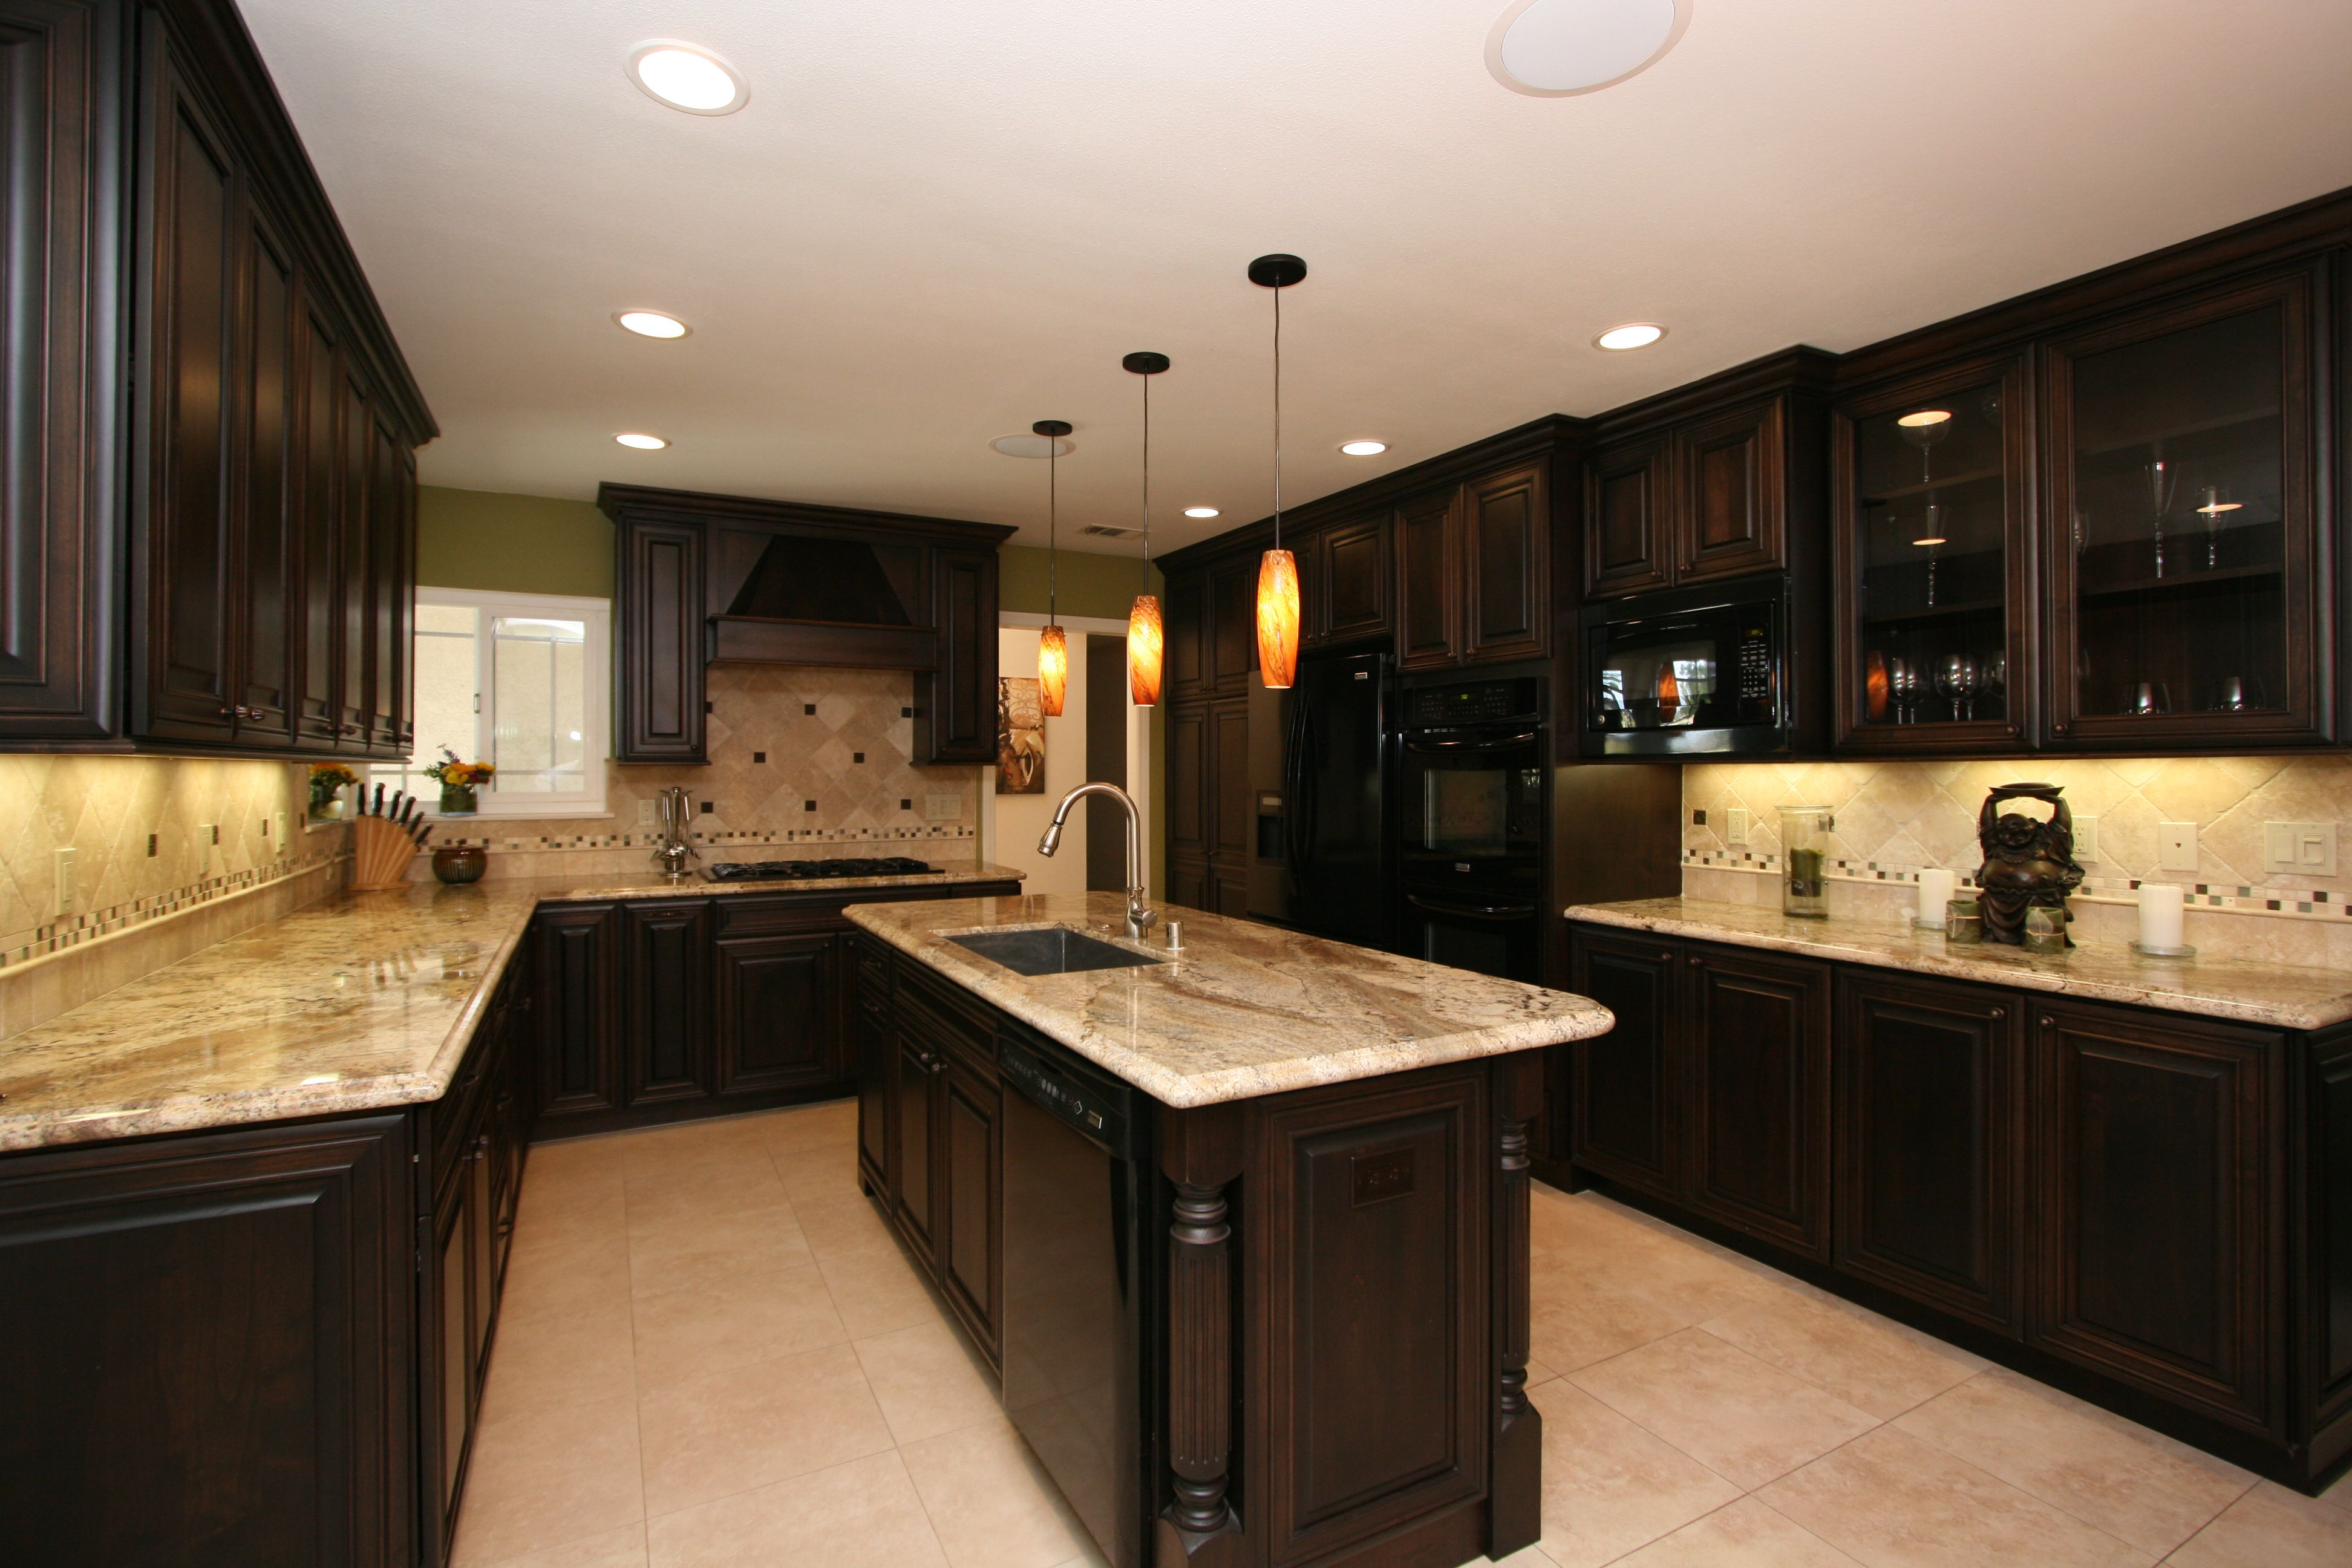 Open shelving balances the use of black cabinetry in this stunning kitchen.  Marbled black granite